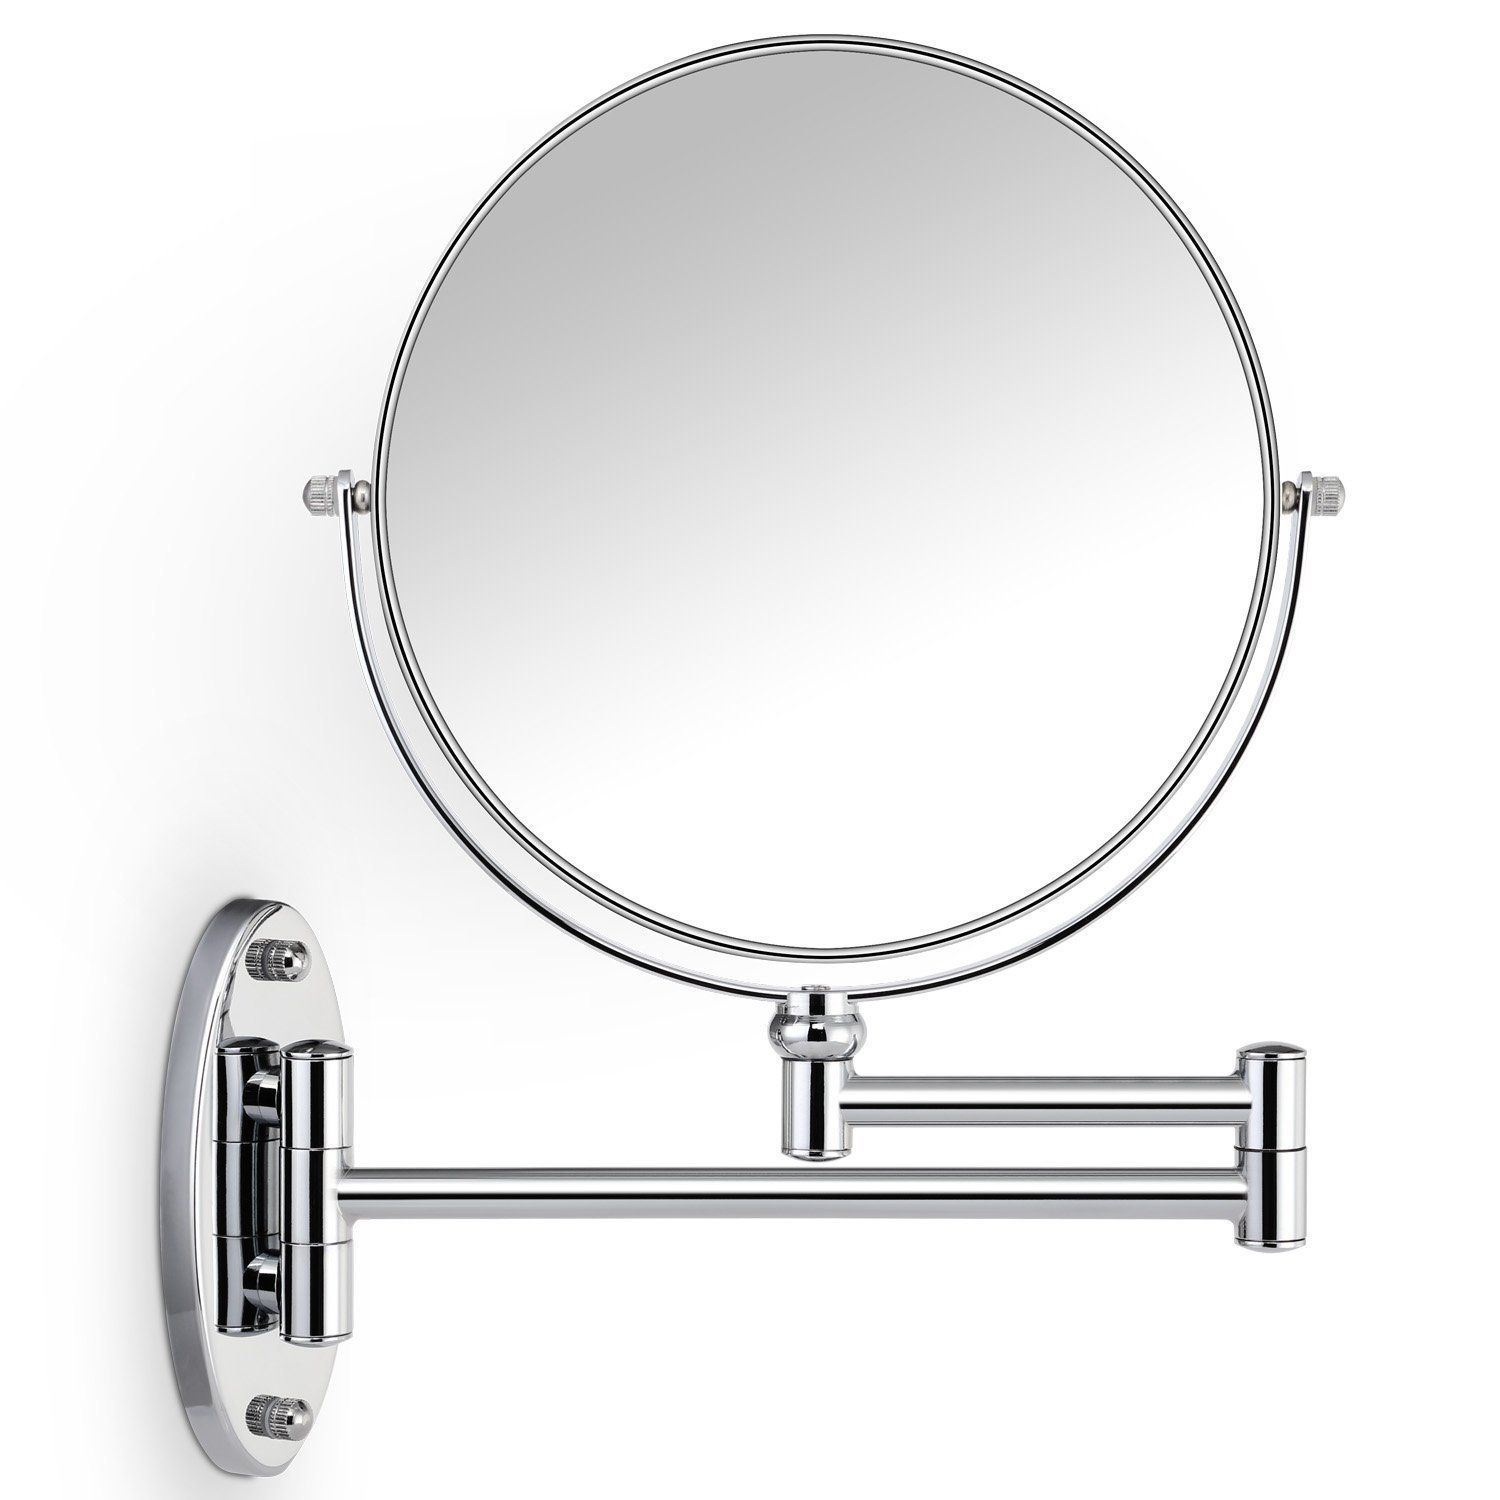 Cosprof Bathroom Mirror 10X/1X Magnification Double-sided 8 Inch Wall Mounted Vanity Magnifying Mirror Swivel, Extendable and Chrome Finished